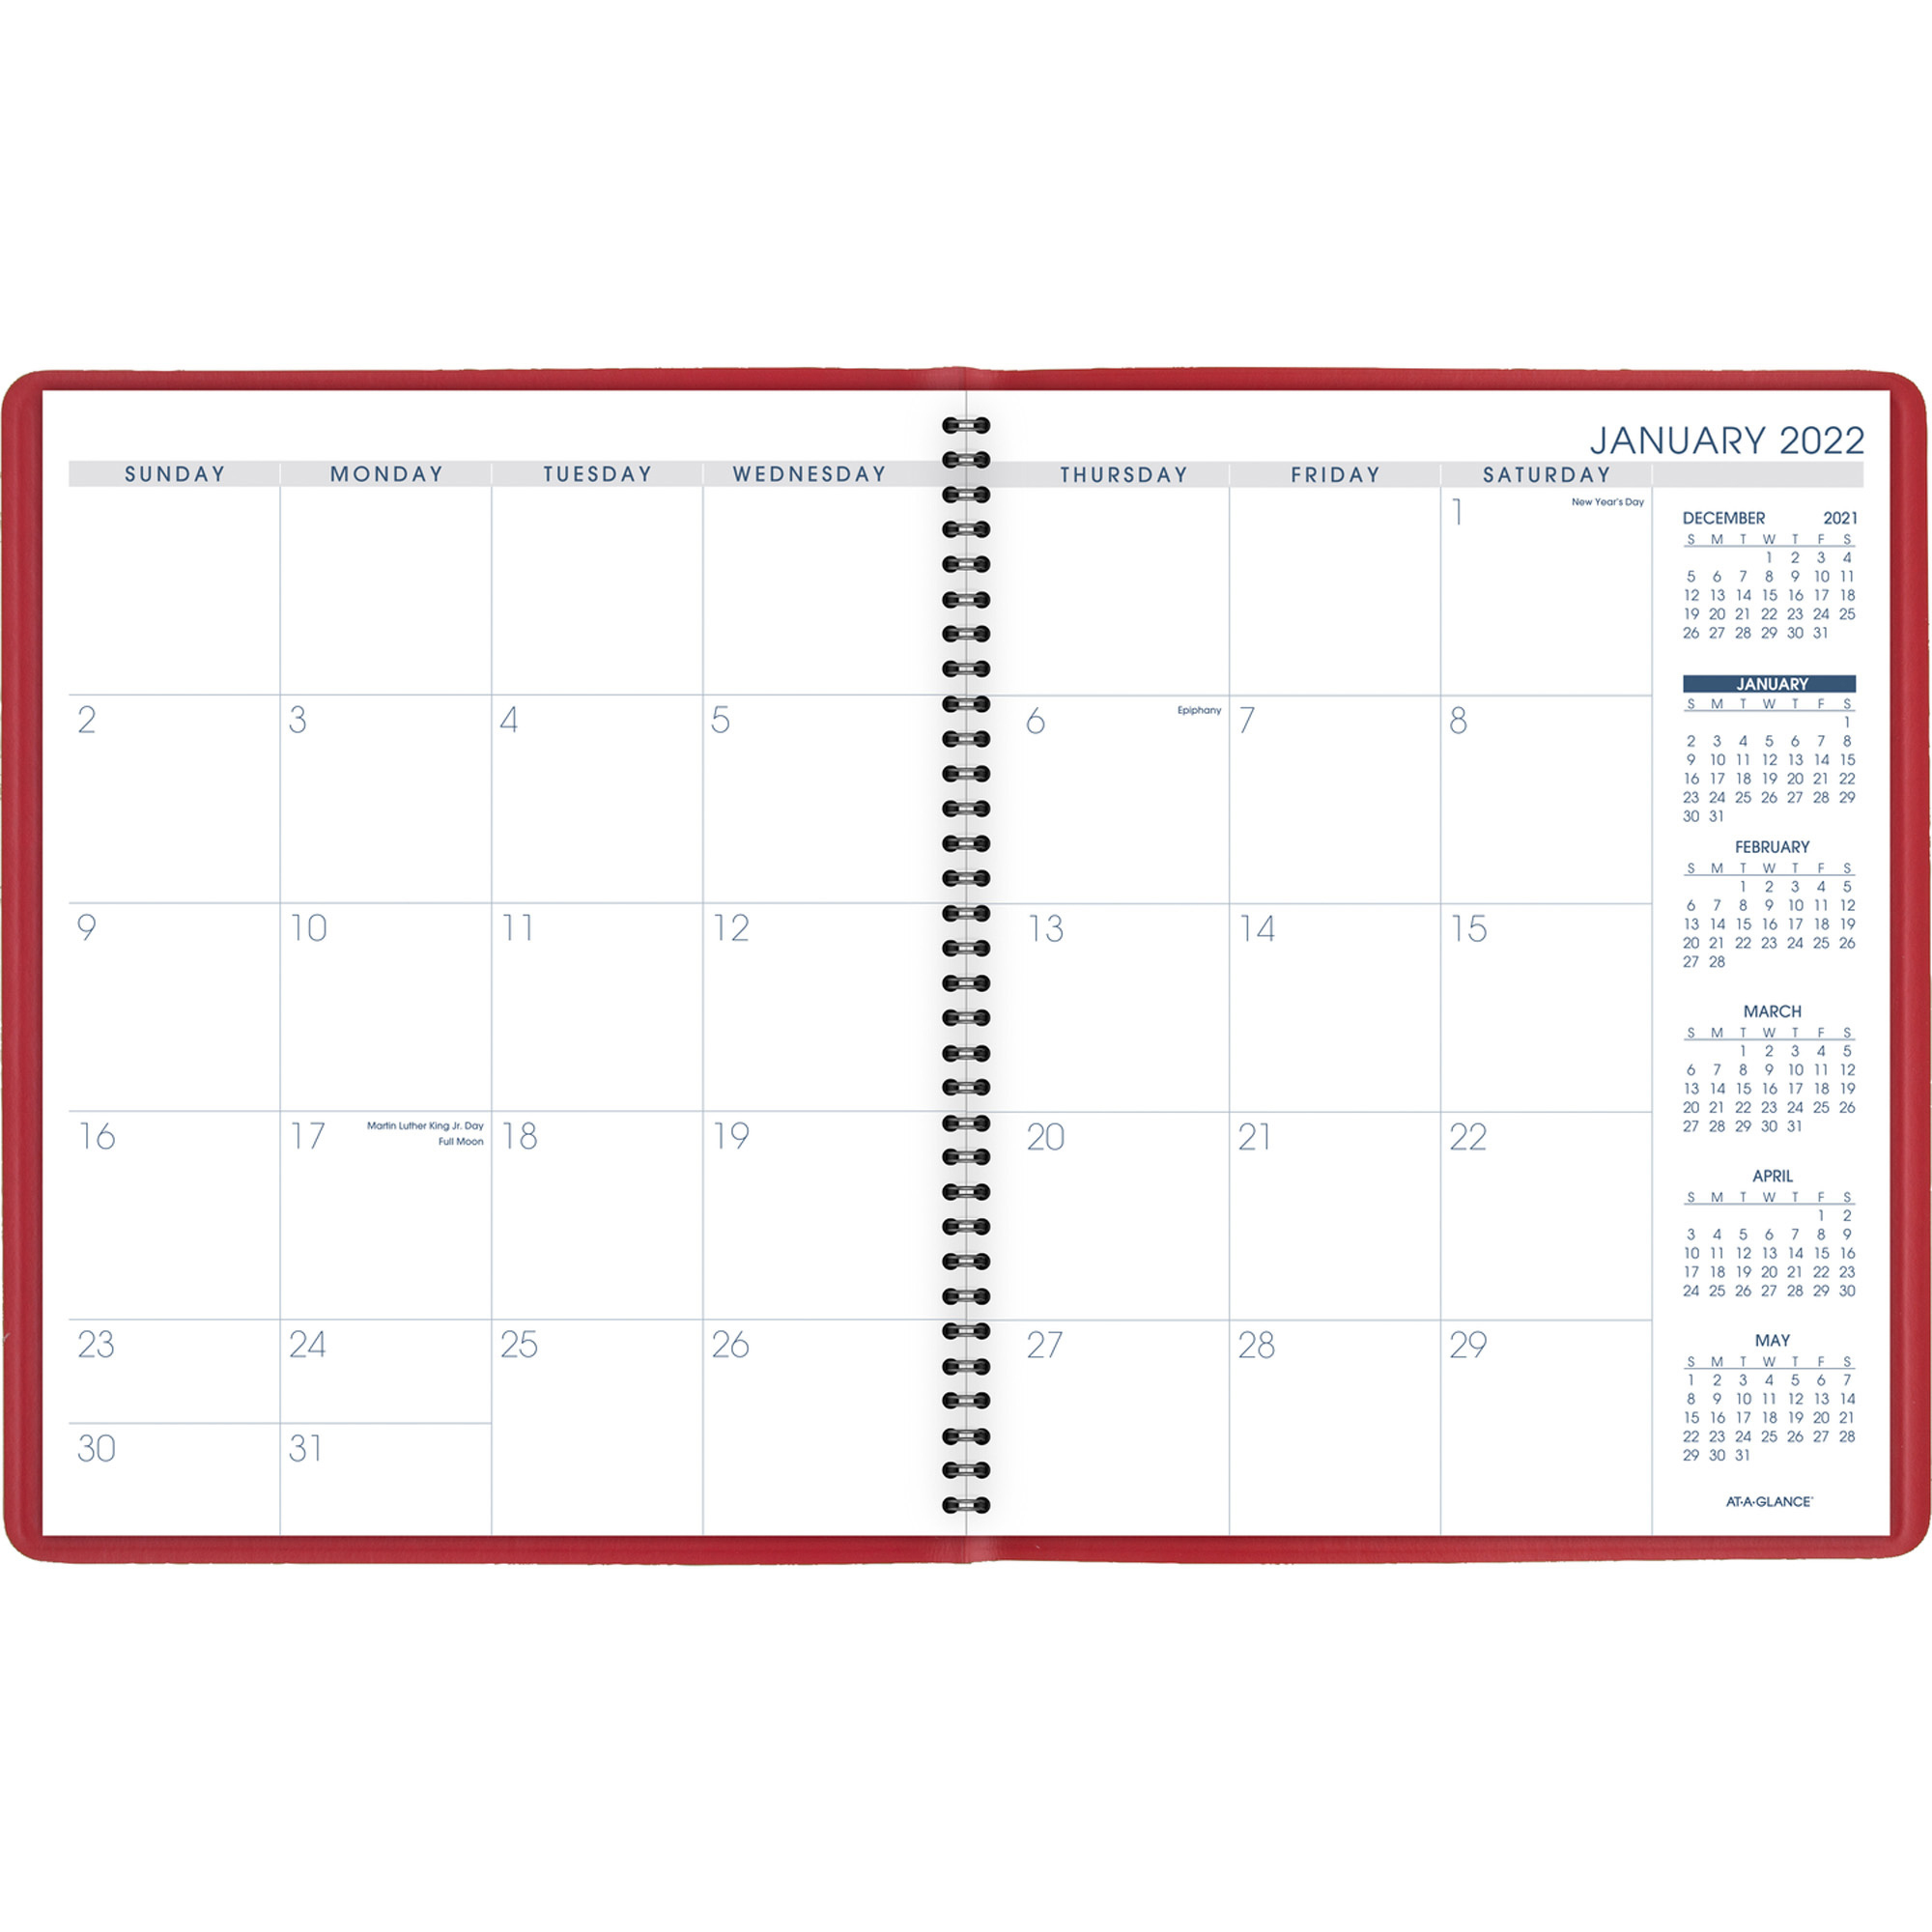 Aag7025013 – At A Glance Fashion Color Monthly Planner With Regard To Julian Date Calendar For 2022